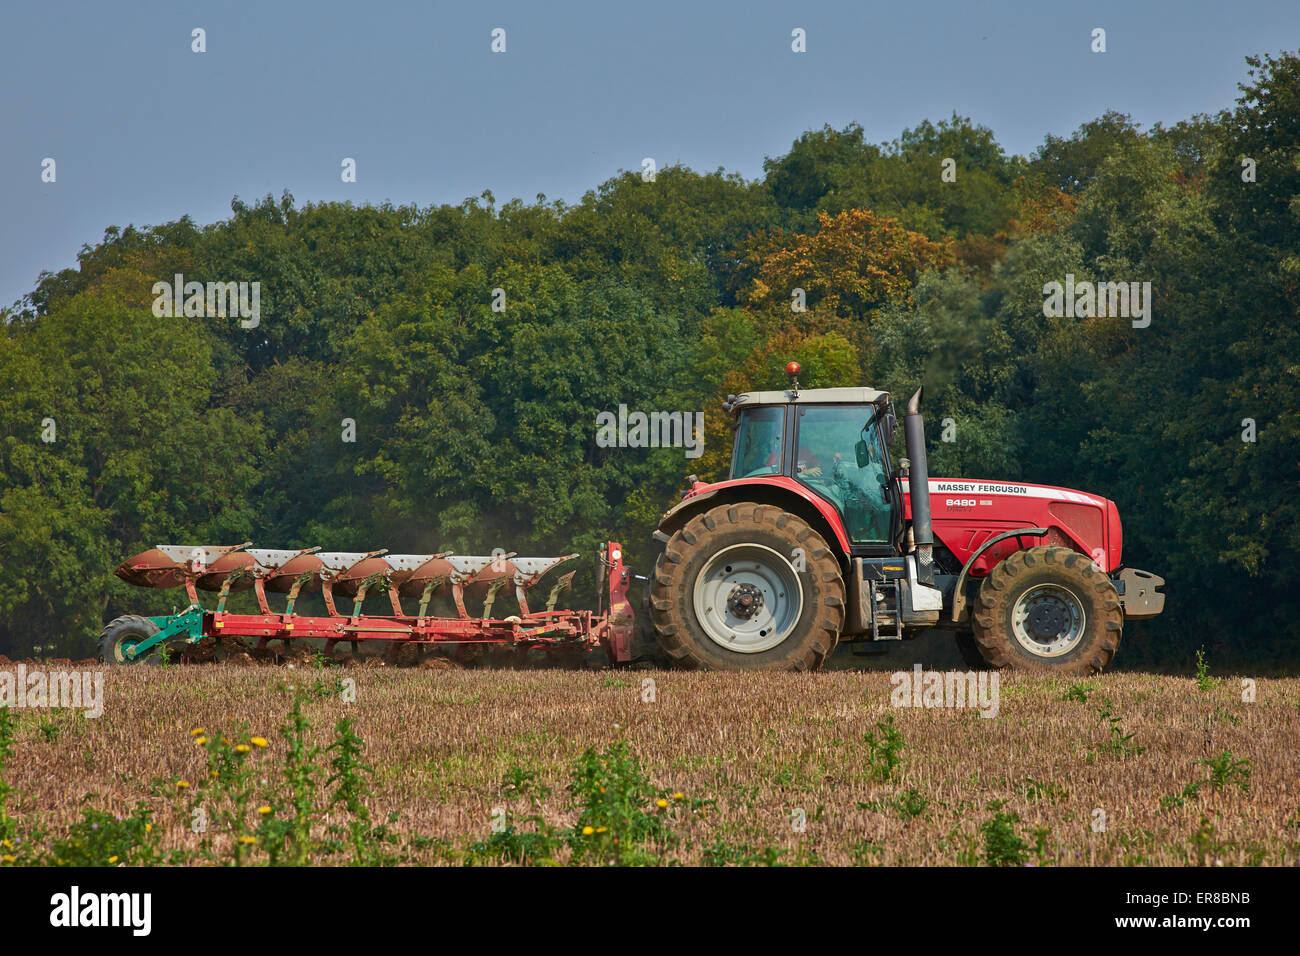 A red Tractor ploughing on Farmland In Kelvedon Essex, UK - Stock Image